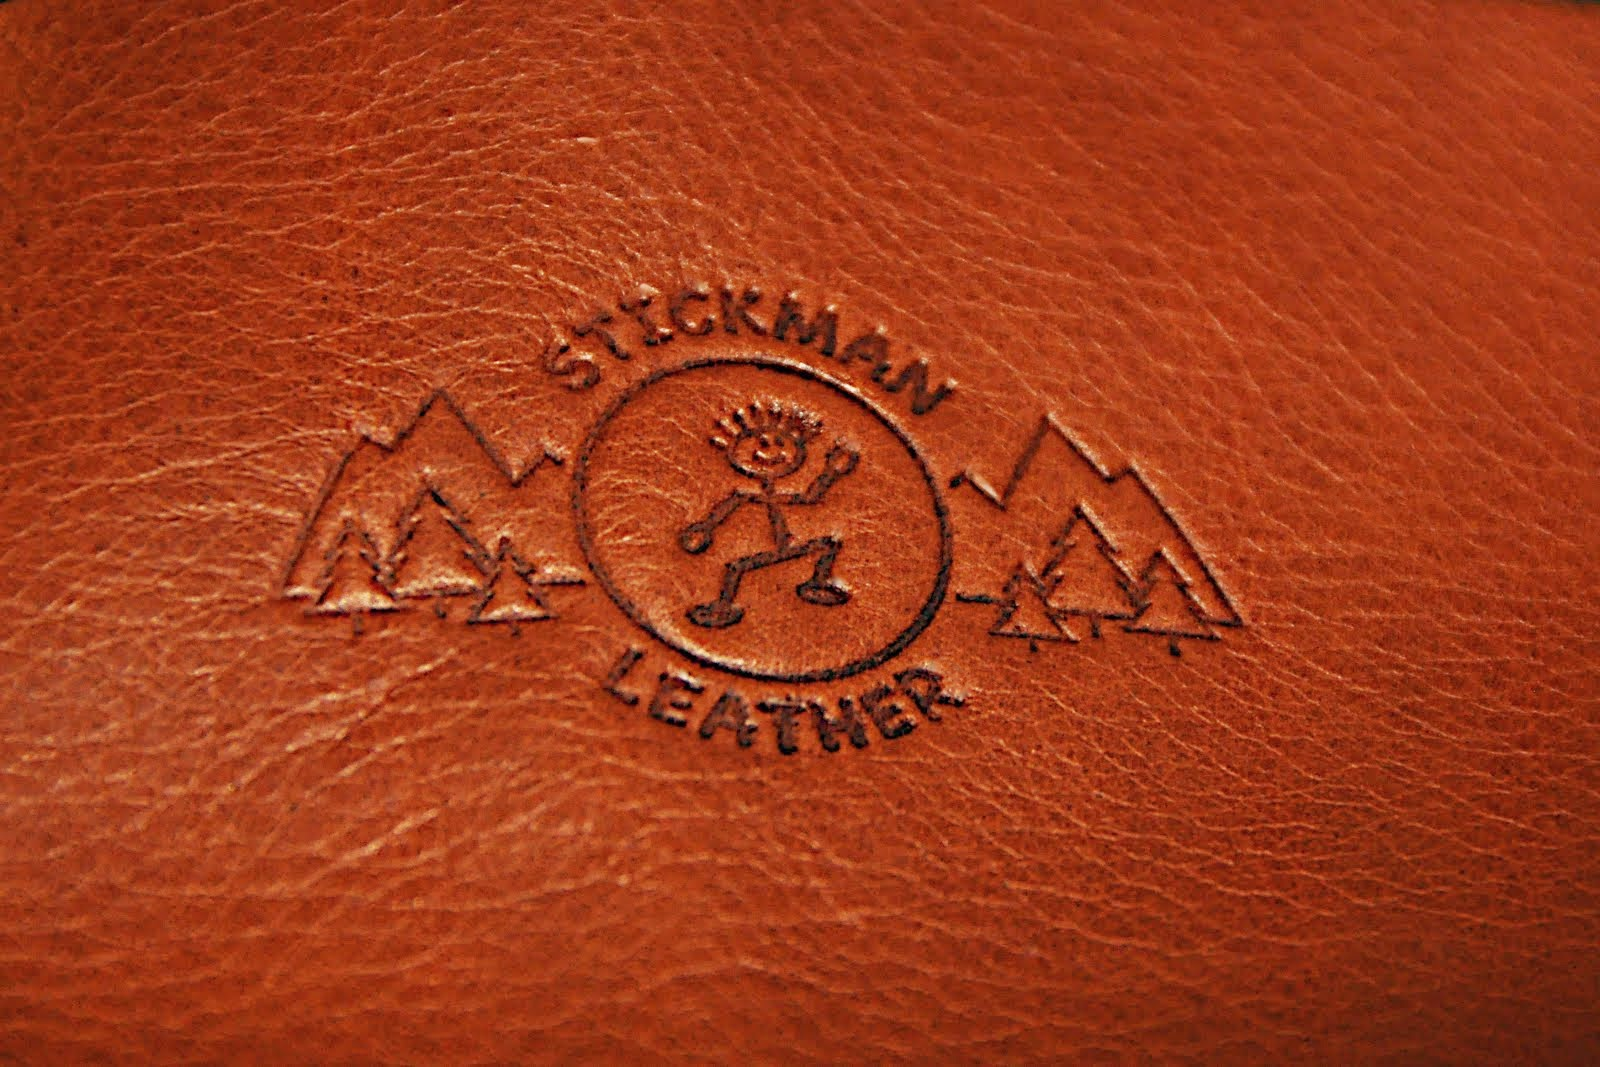 shawn@stickmanleather.com